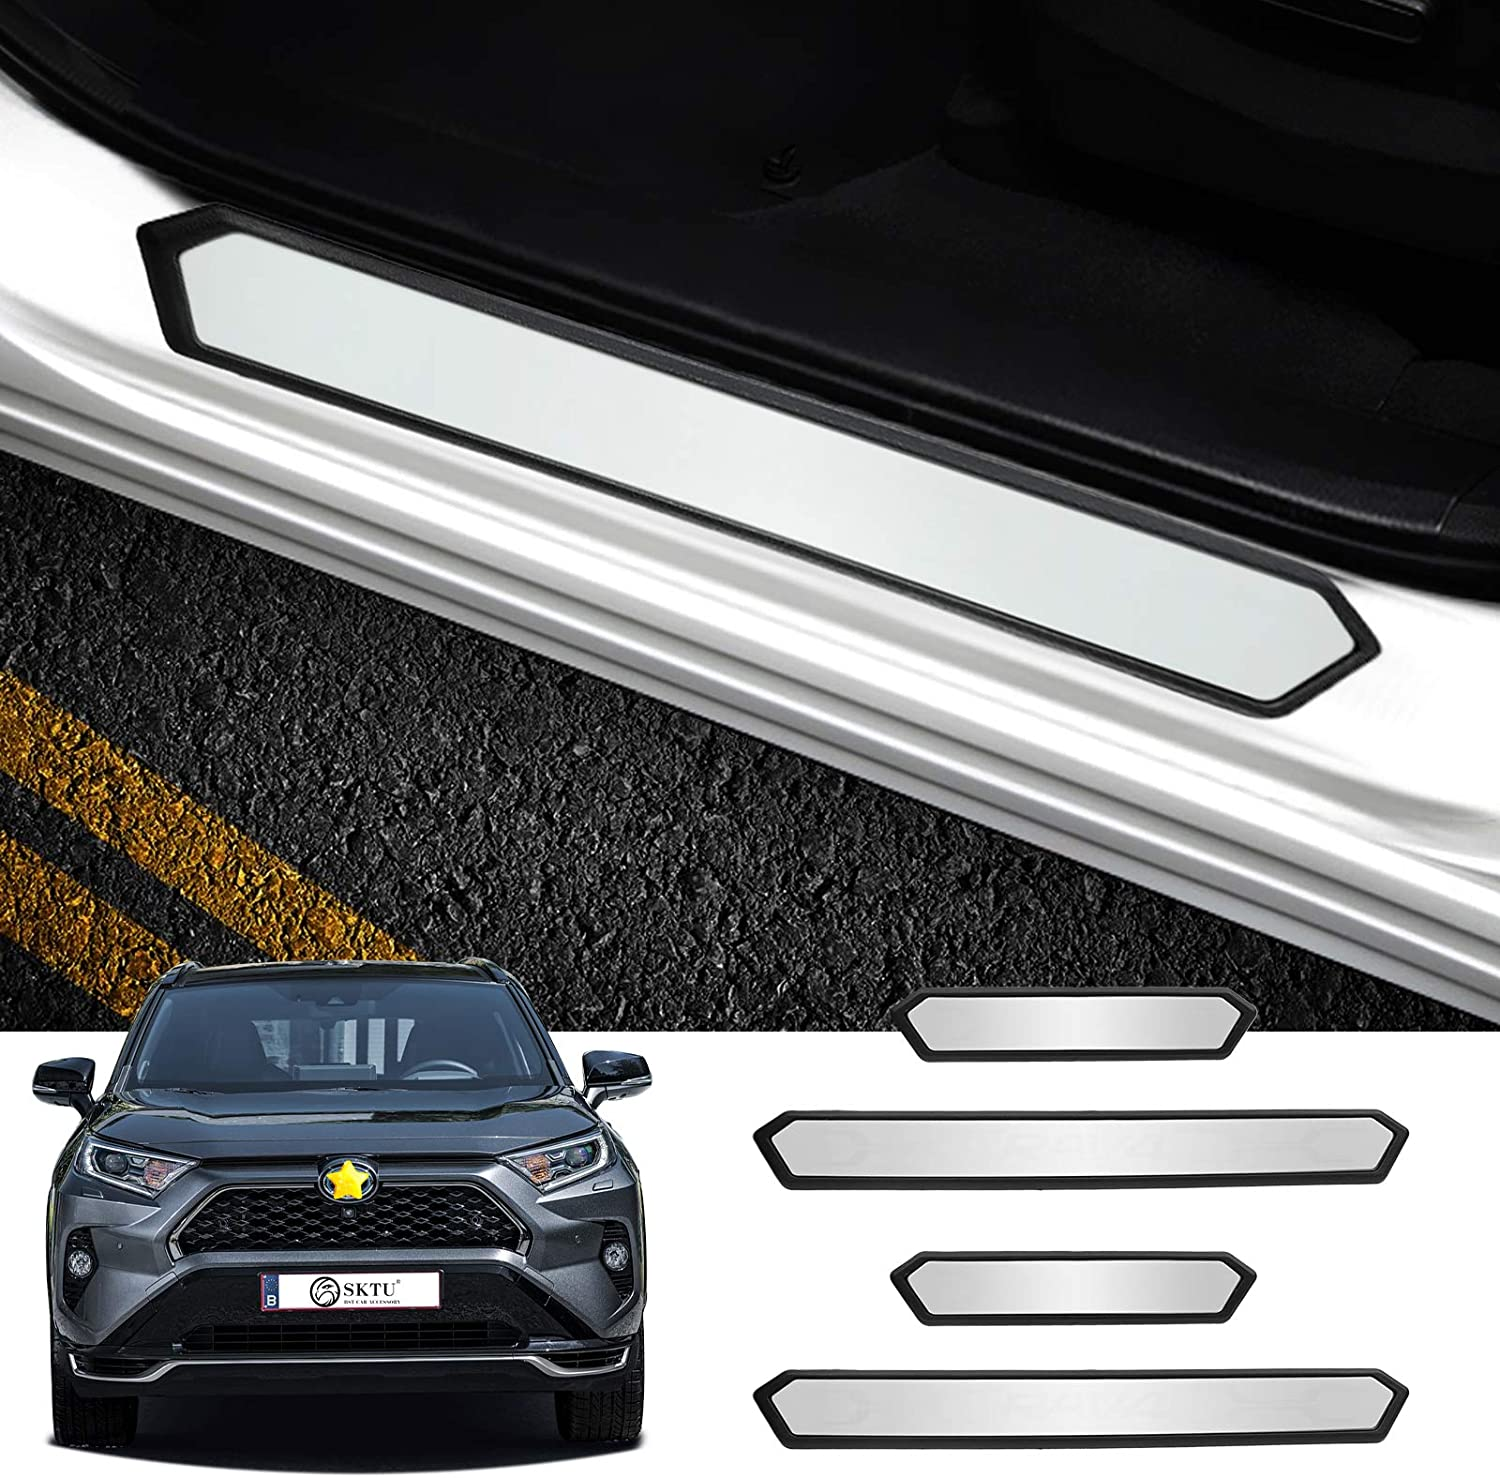 4PCS Door Sill 55% Louisville-Jefferson County Mall OFF Protector for Guard Toyota Entry 2021 Venza